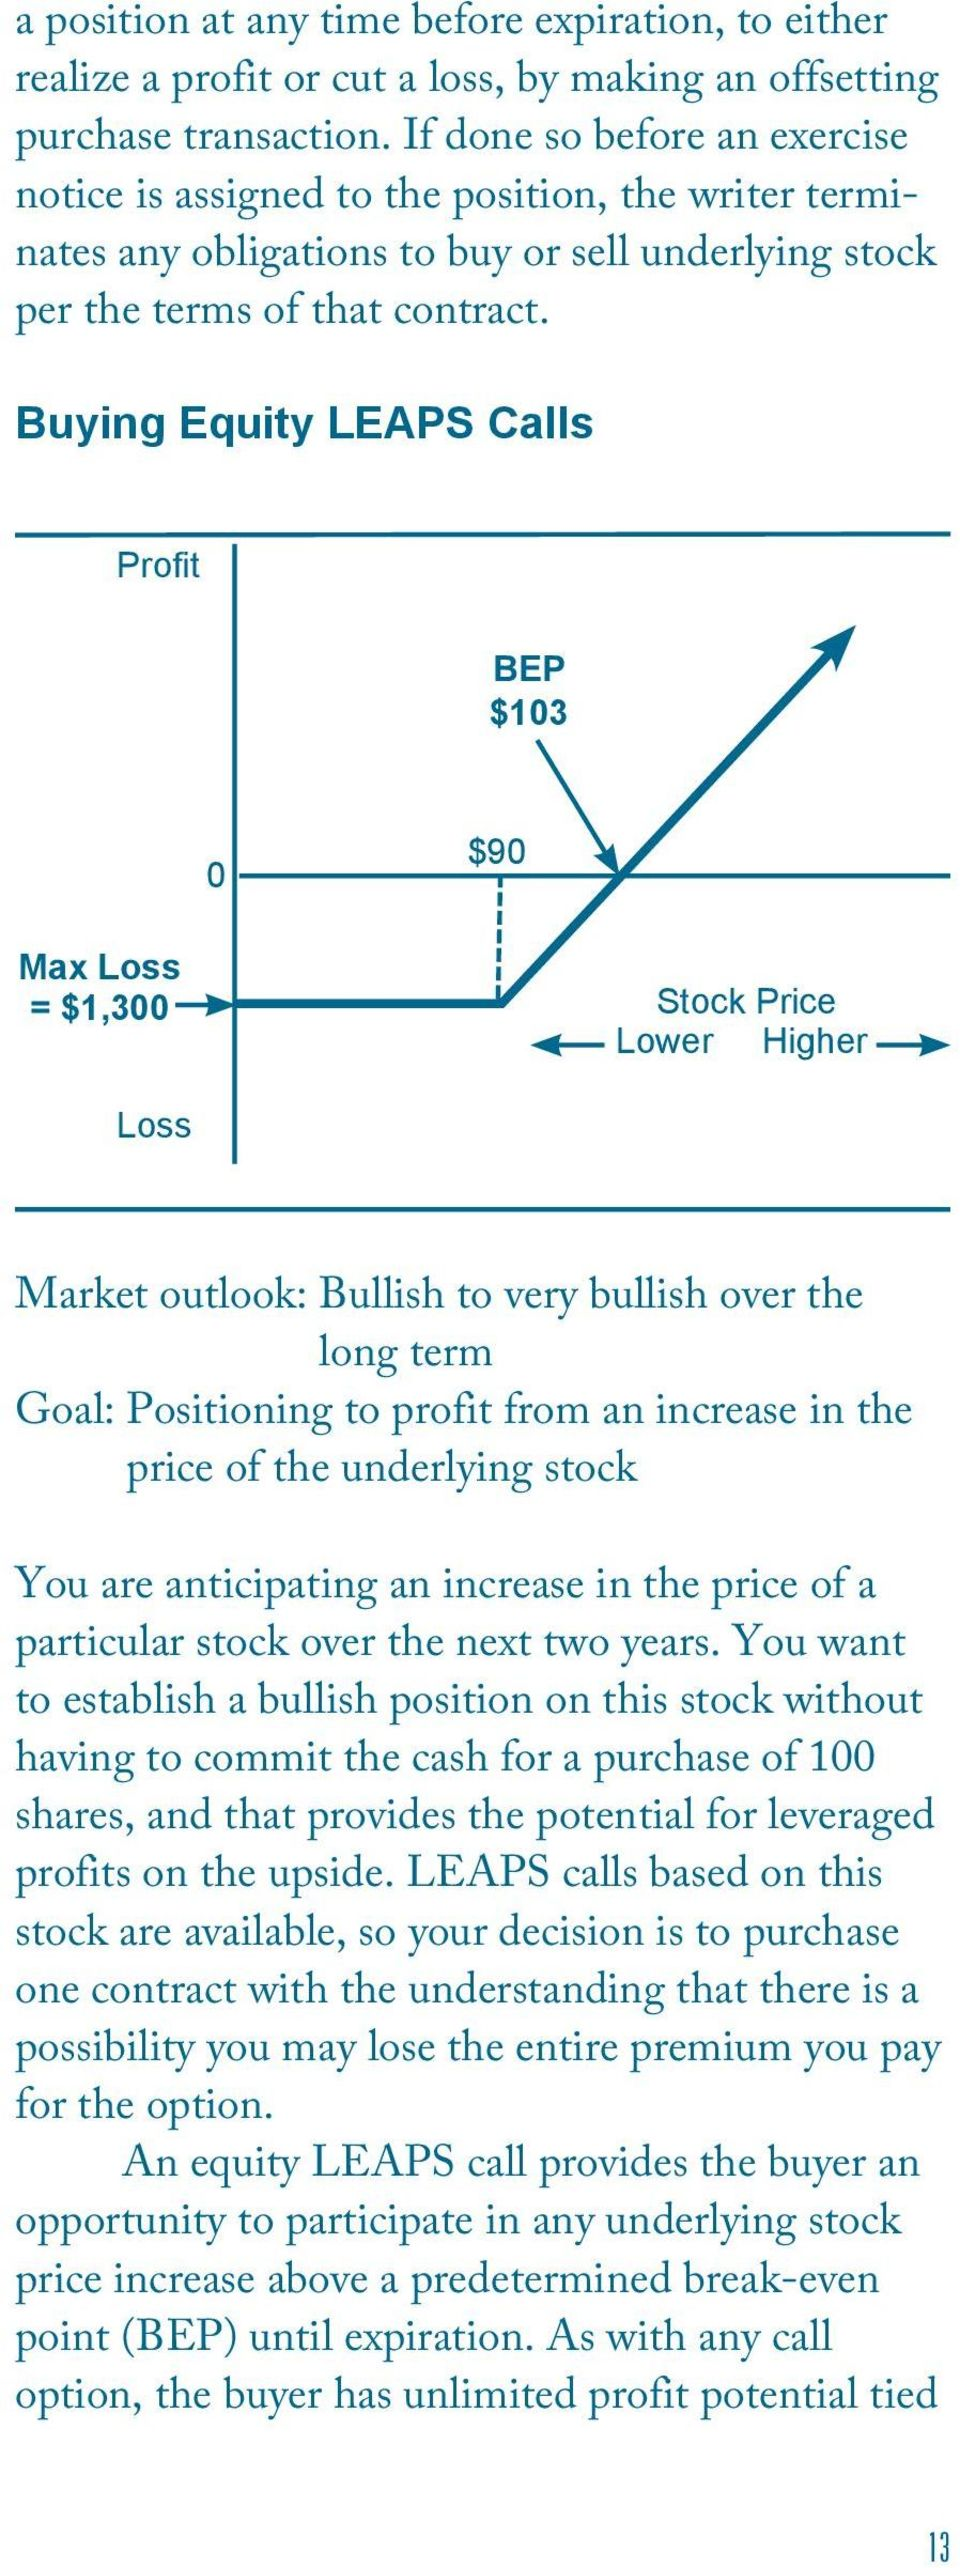 Buying Equity LEAPS Calls Profit BEP $103 0 $90 Max Loss = $1,300 Stock Price Lower Higher Loss Market outlook: Bullish to very bullish over the long term Goal: Positioning to profit from an increase